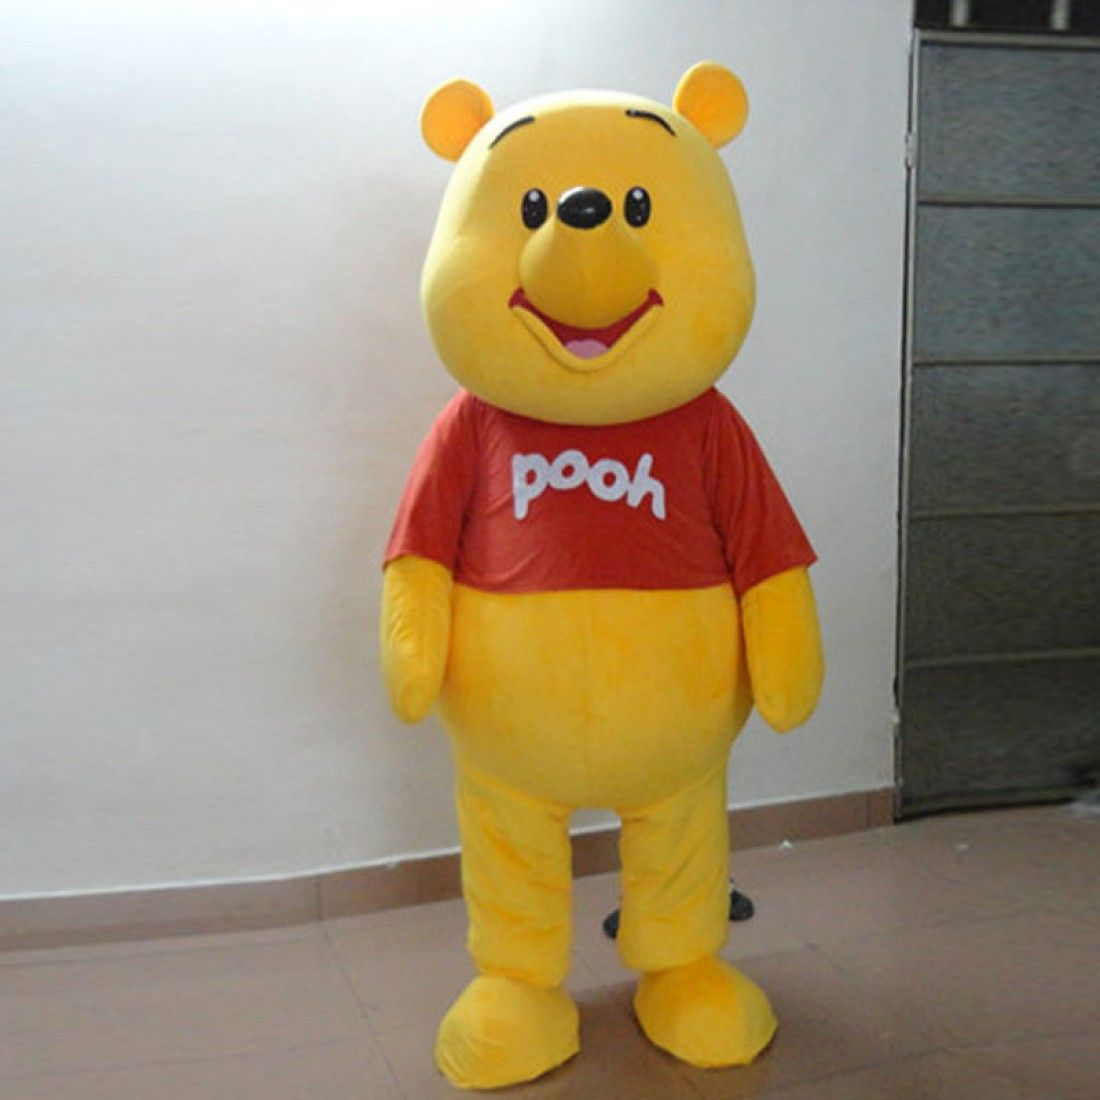 Xmas Winnie the Pooh Mascot Costume Cartoon Bear Outfit Fancy Party Dress Adult